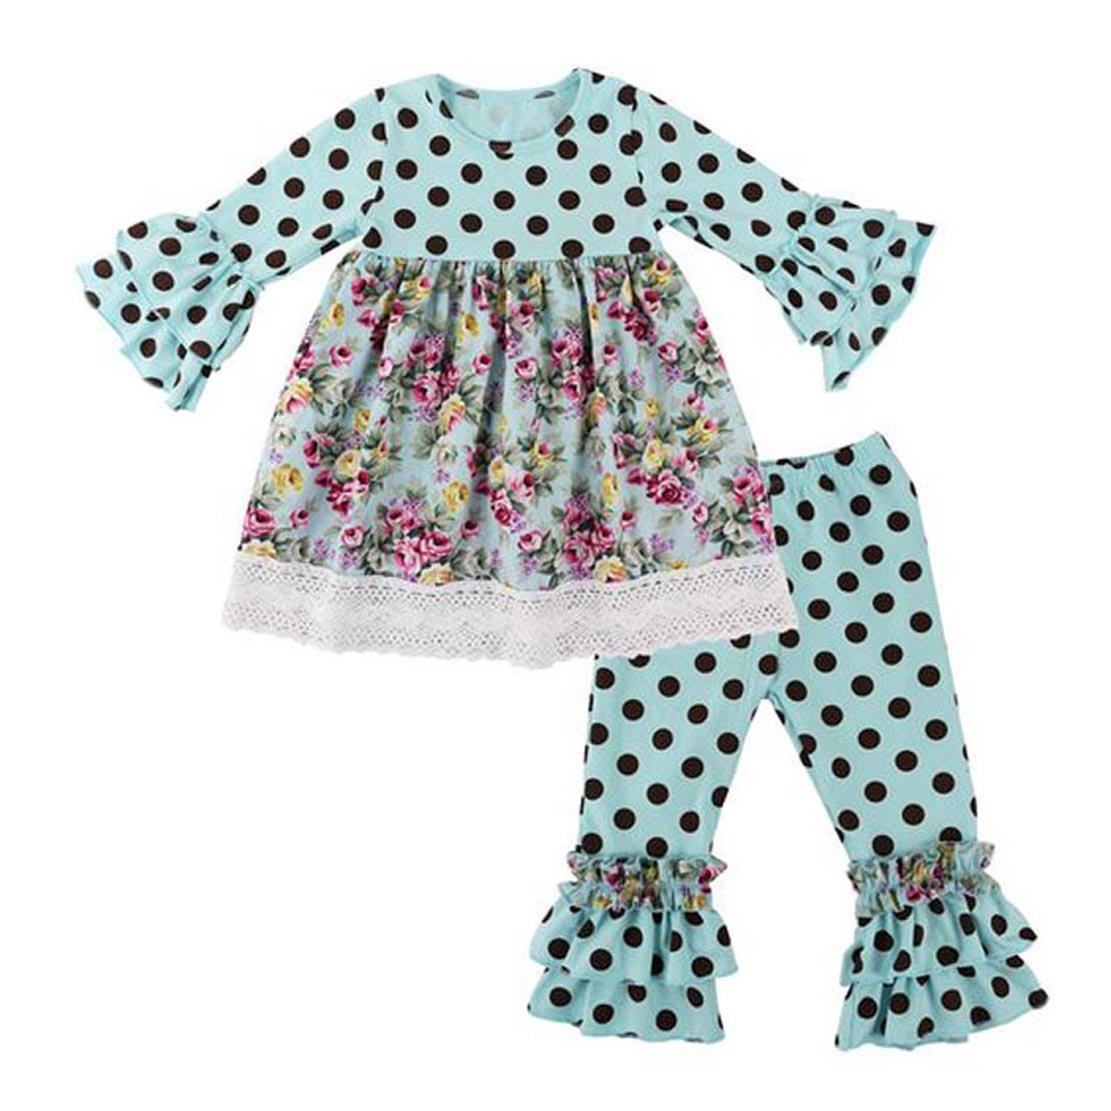 GIRLS BOUTIQUE Flower Print Tunic DRESS /& RUFFLED Polka DOT Pant Outfit